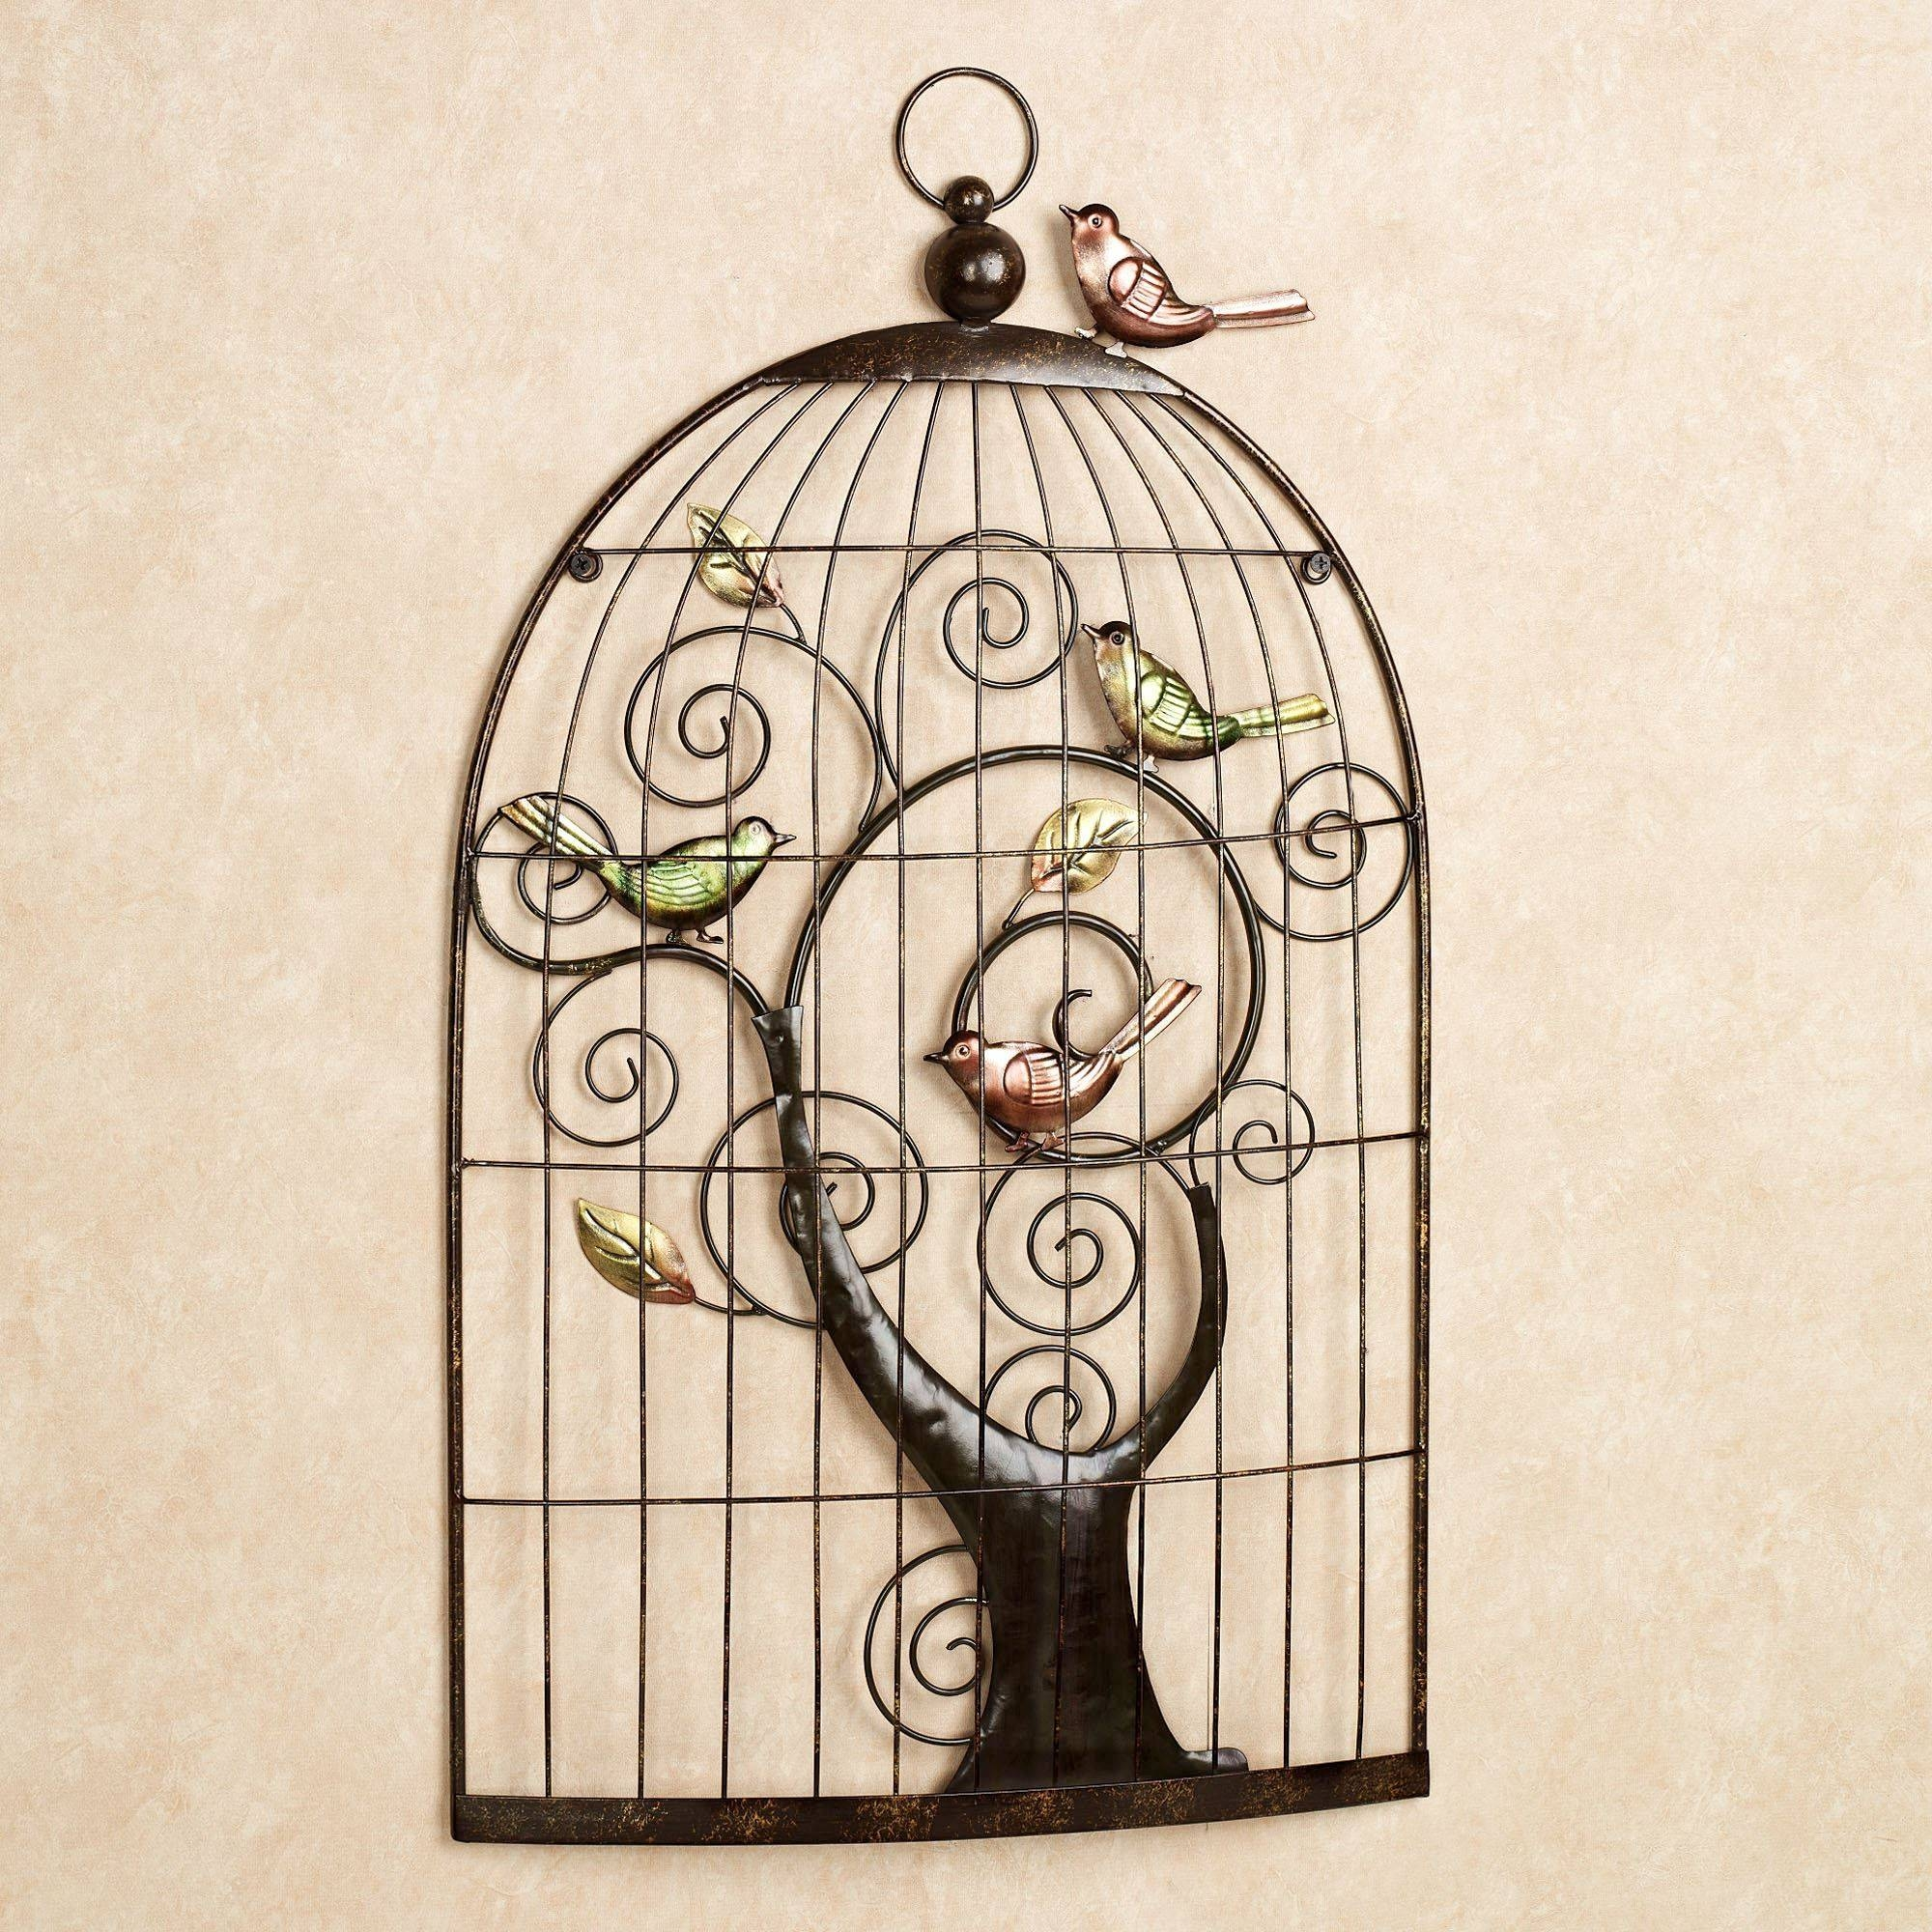 Enchanting Sonnet Birdcage Metal Wall Art In Most Recent Birdcage Metal Wall Art (View 5 of 20)